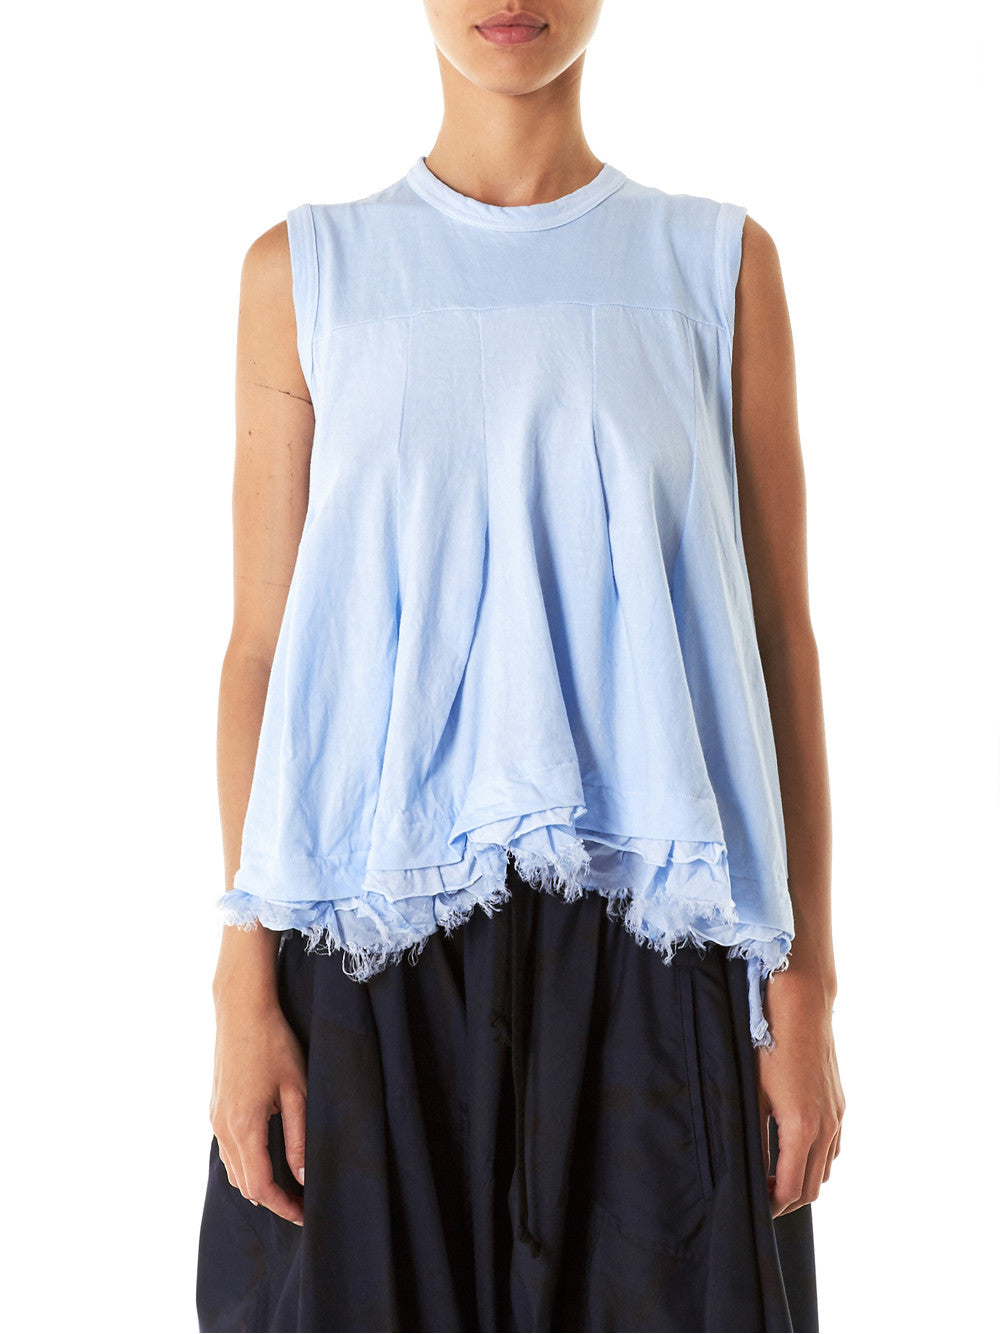 Box-Pleated Raw Hem Tank (TS-T021-051-2) - H. Lorenzo